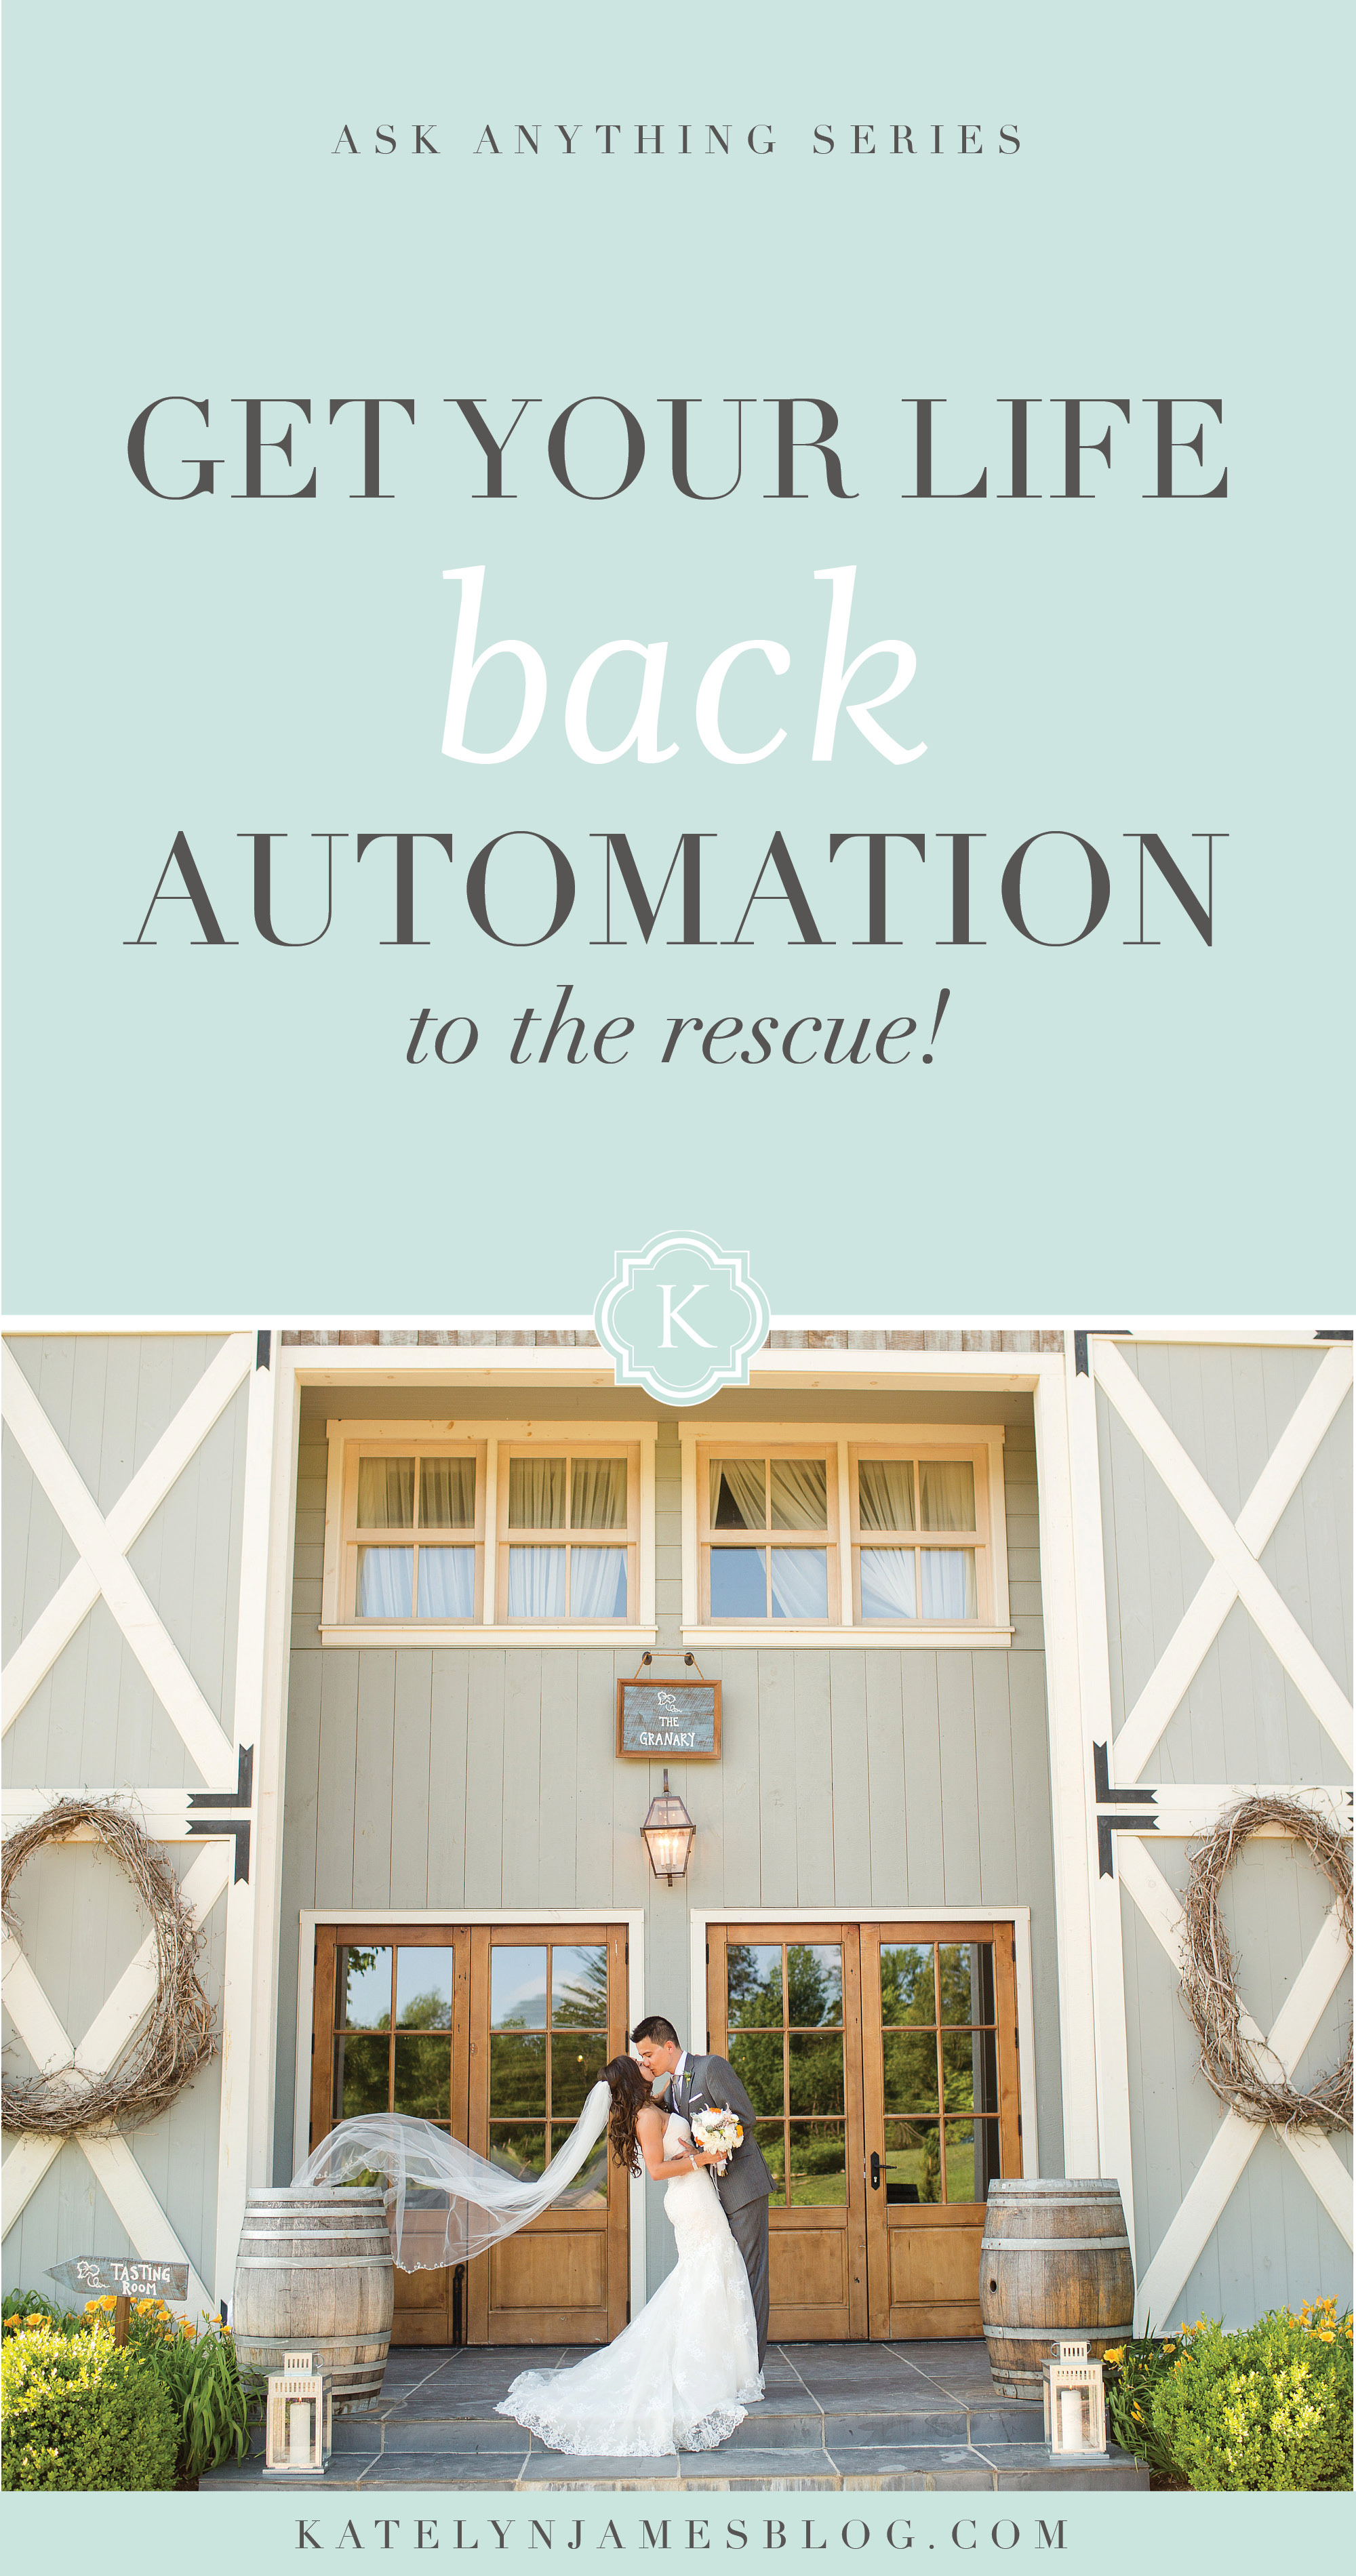 Get Your Life Back Automation to the Rescue! by Katelyn James Photography